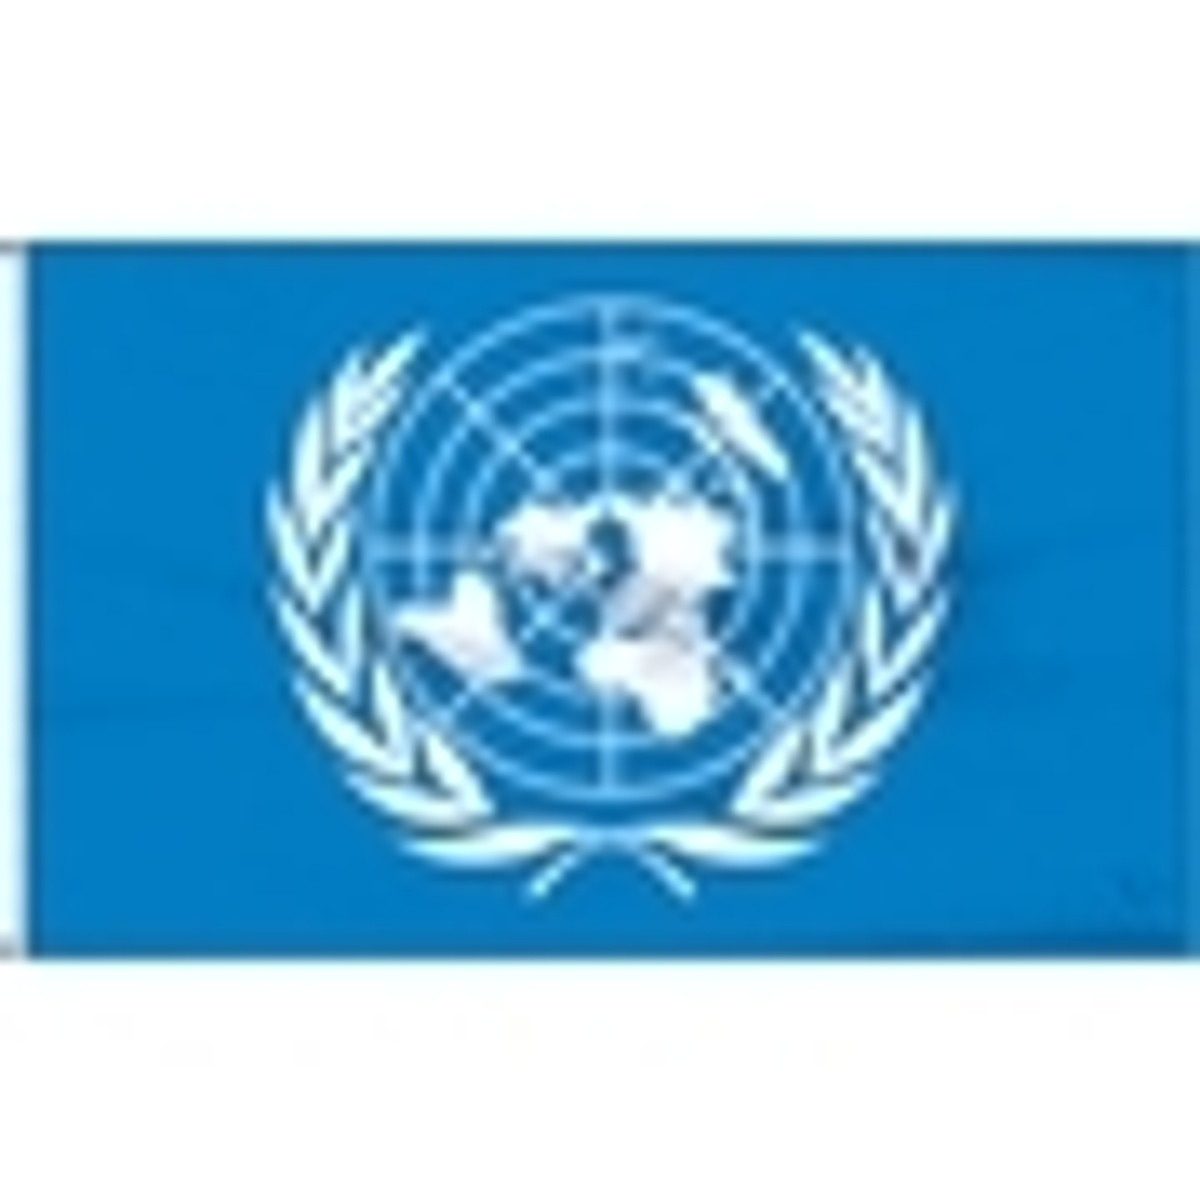 United Nations (UN) Flags